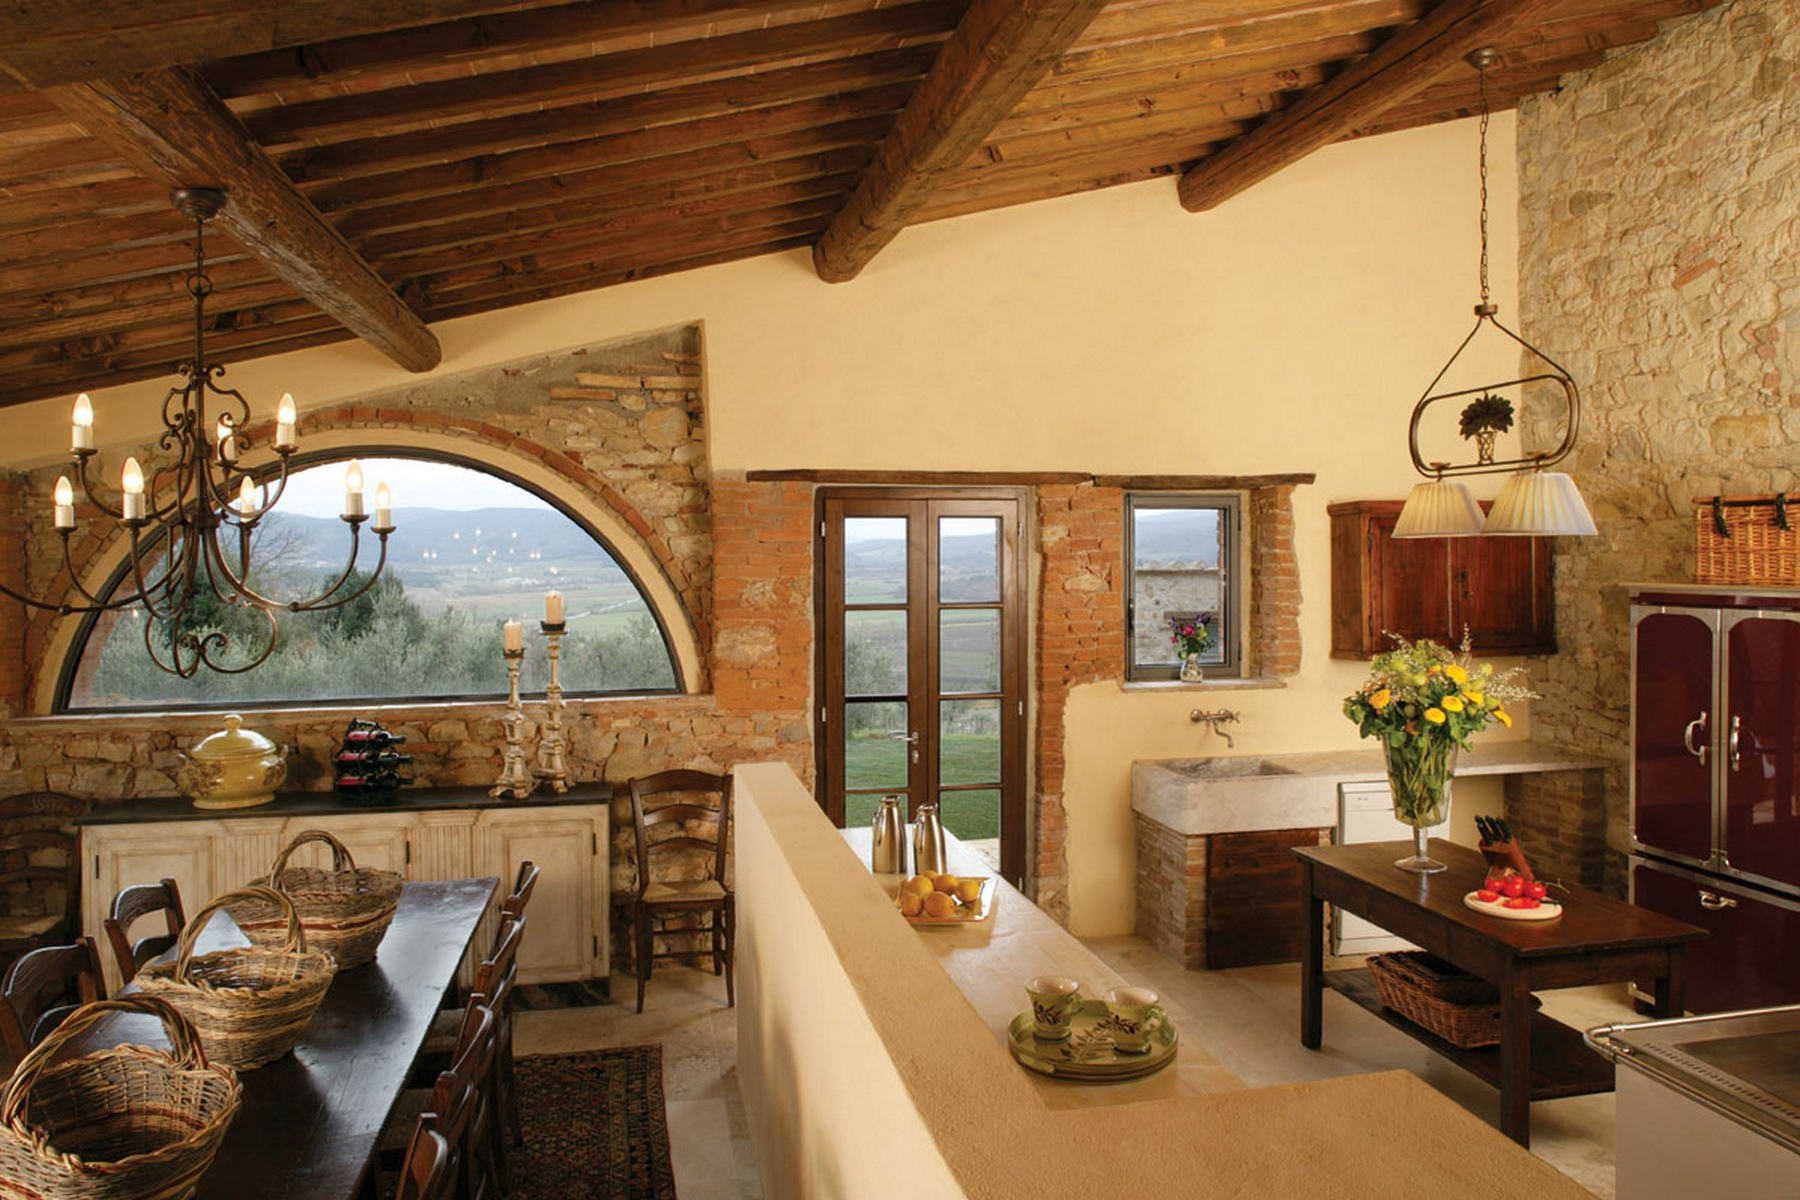 Additional photo for property listing at Tuscany luxury lifestyle homes Siena Other Siena, Siena 53031 Italy